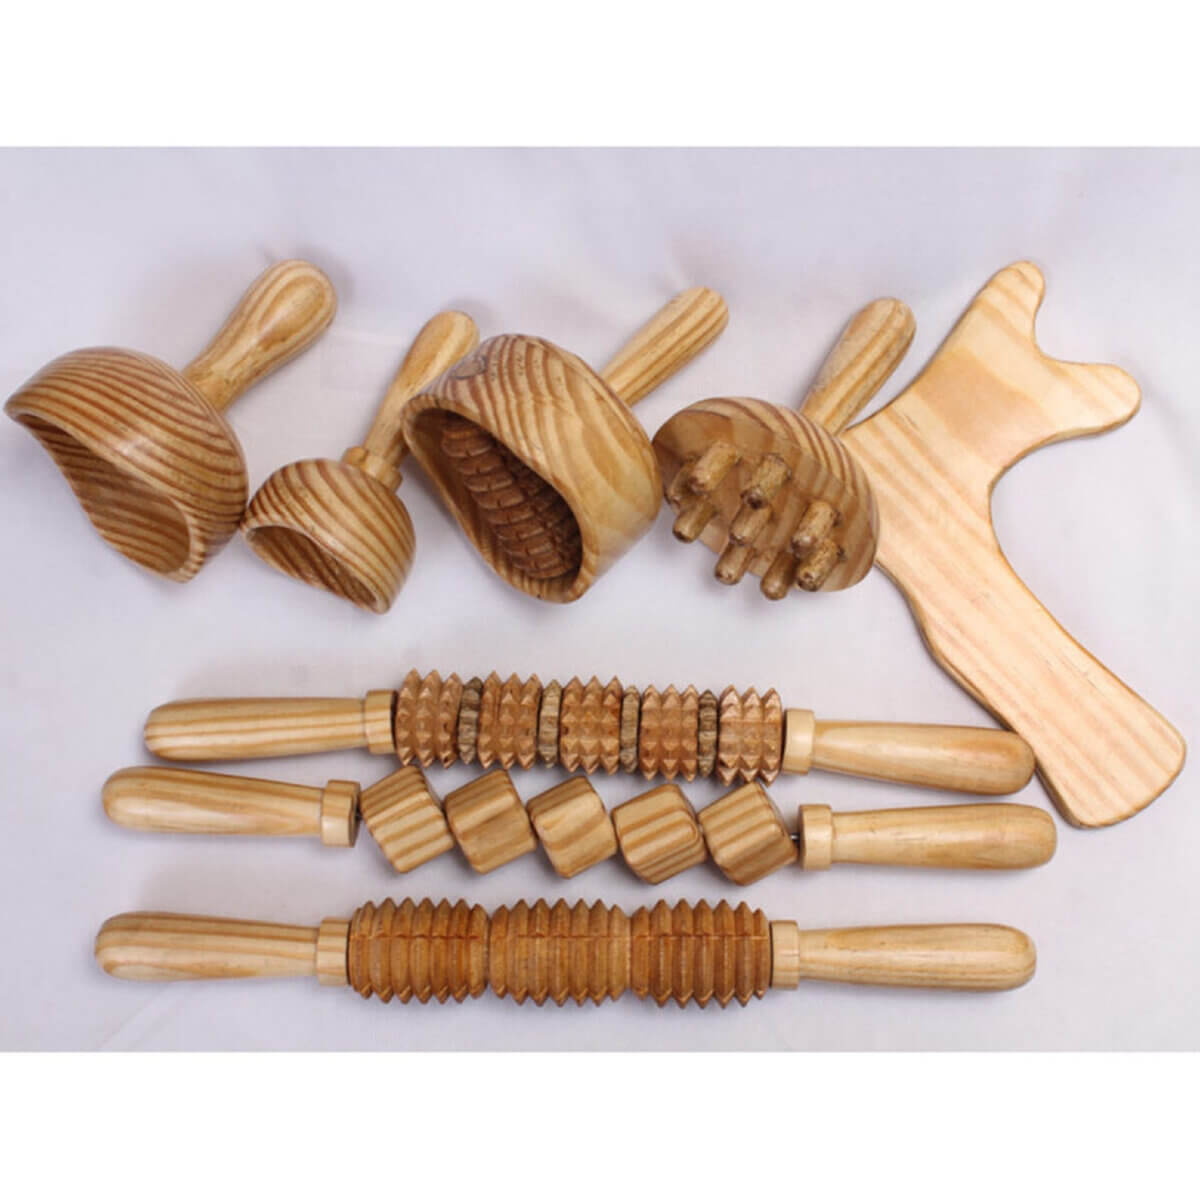 wooden body tools for massage